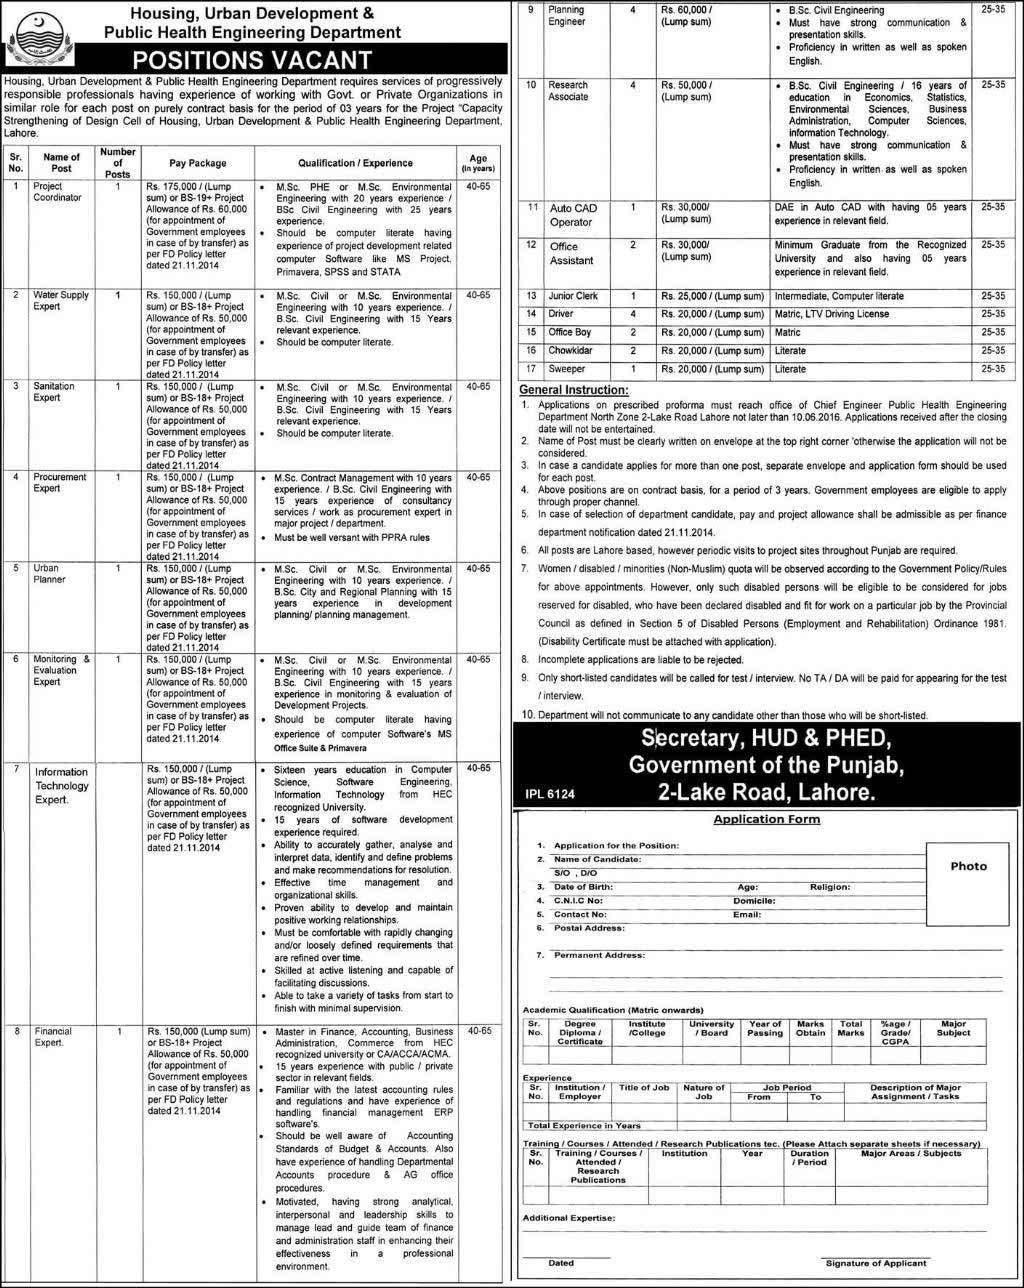 Housing Urban Development and Public Health Engineering Department Jobs